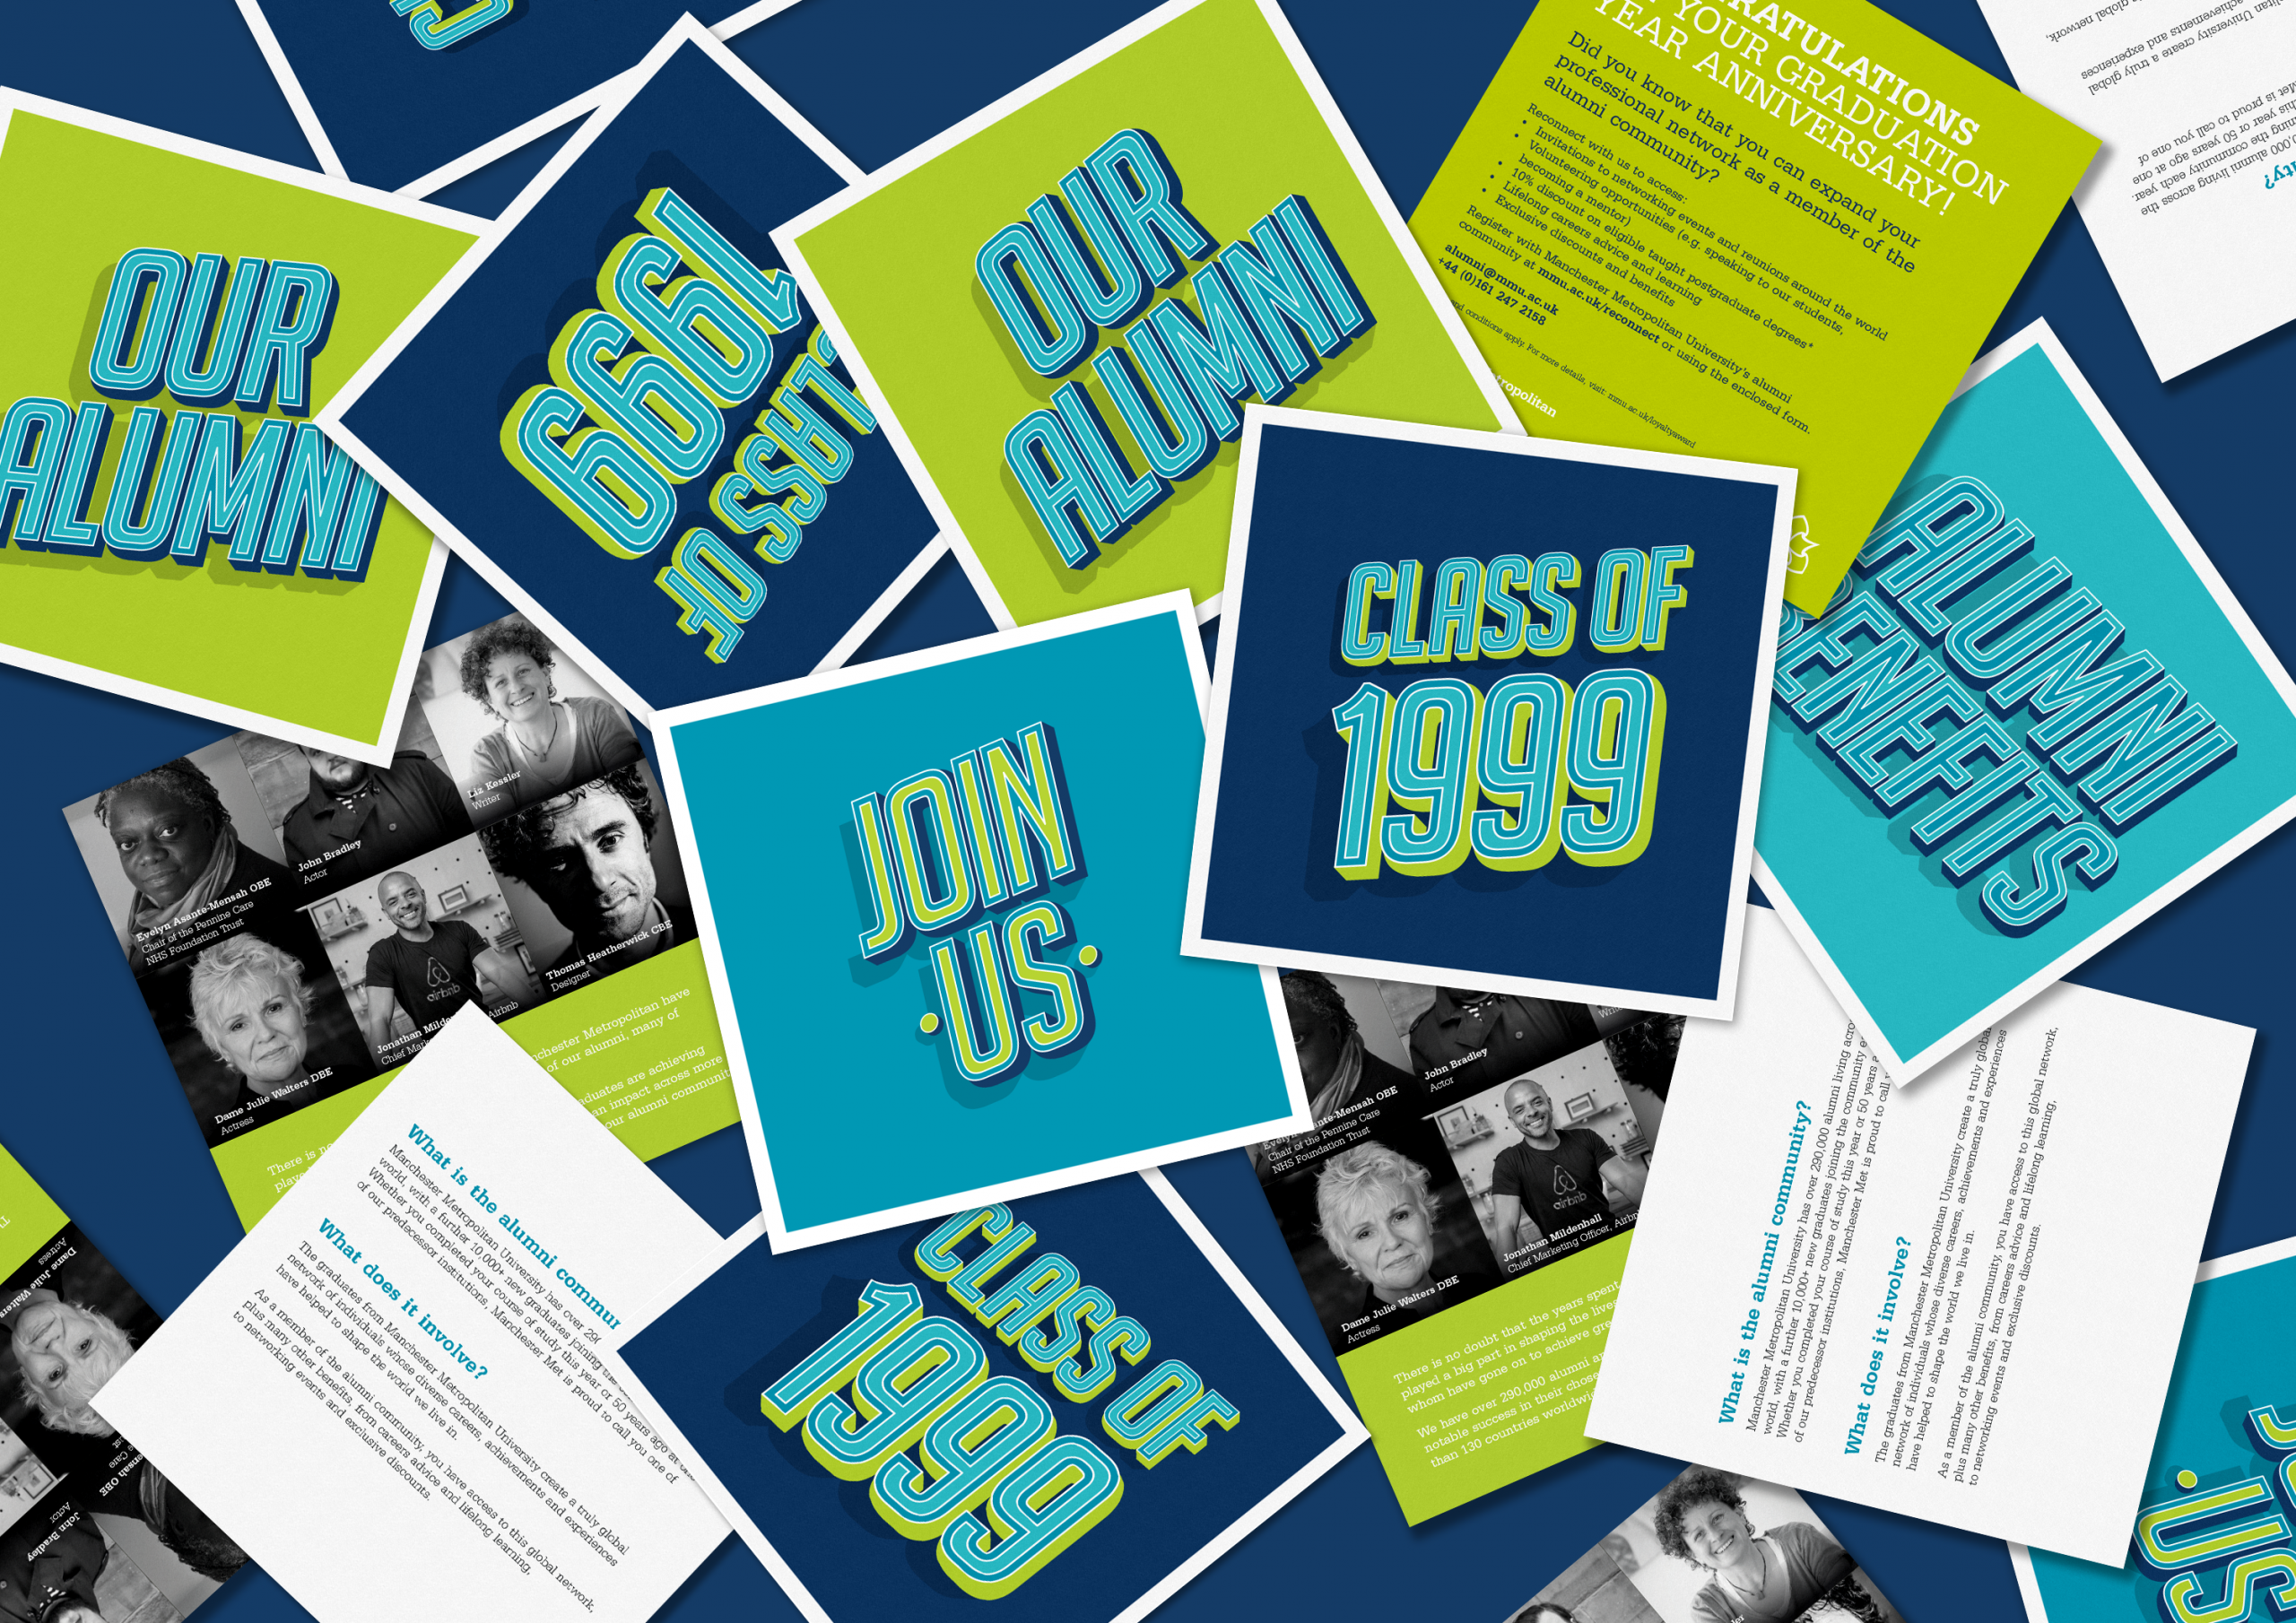 Lots of square, green, blue and navy leaflets scattered on surface, with 'Class of 199' and 'Our Alumni' text